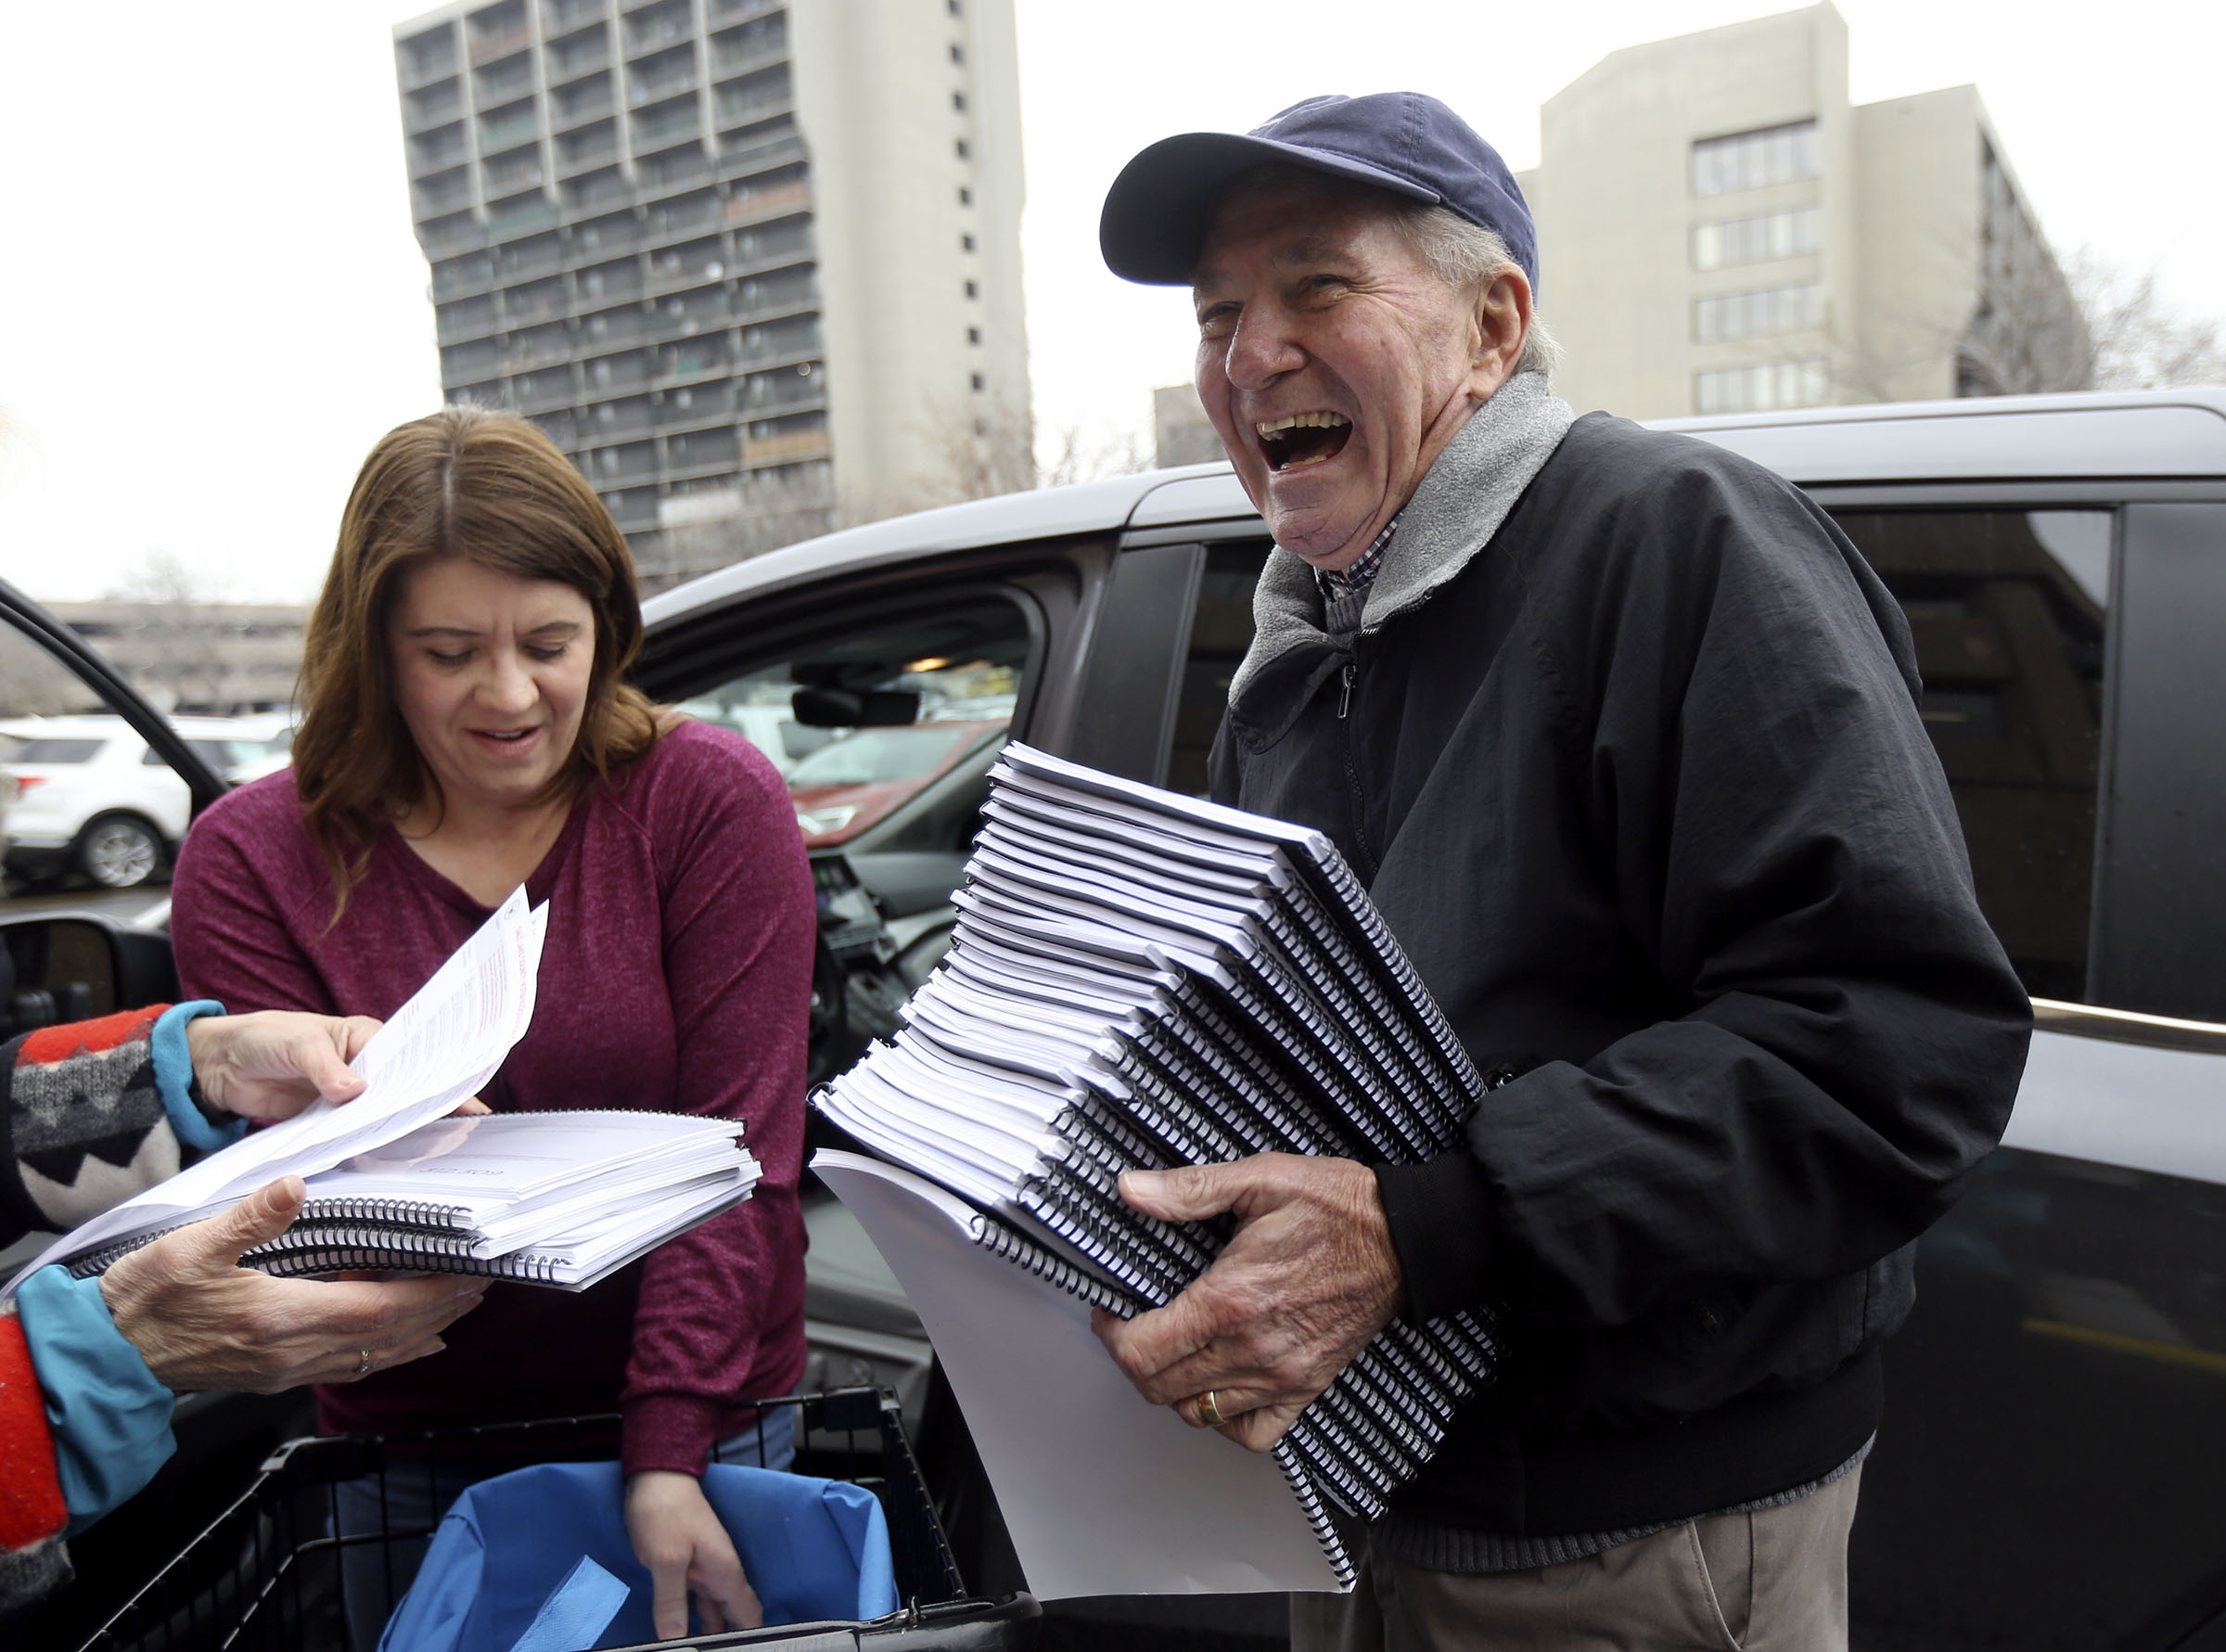 Kent Jorgenson, right, collects packets of signatures for the Utah tax referendum from Kimberly Bekmezian outside of the Salt Lake County Government Center in Salt Lake City on Tuesday, Jan. 21, 2020.